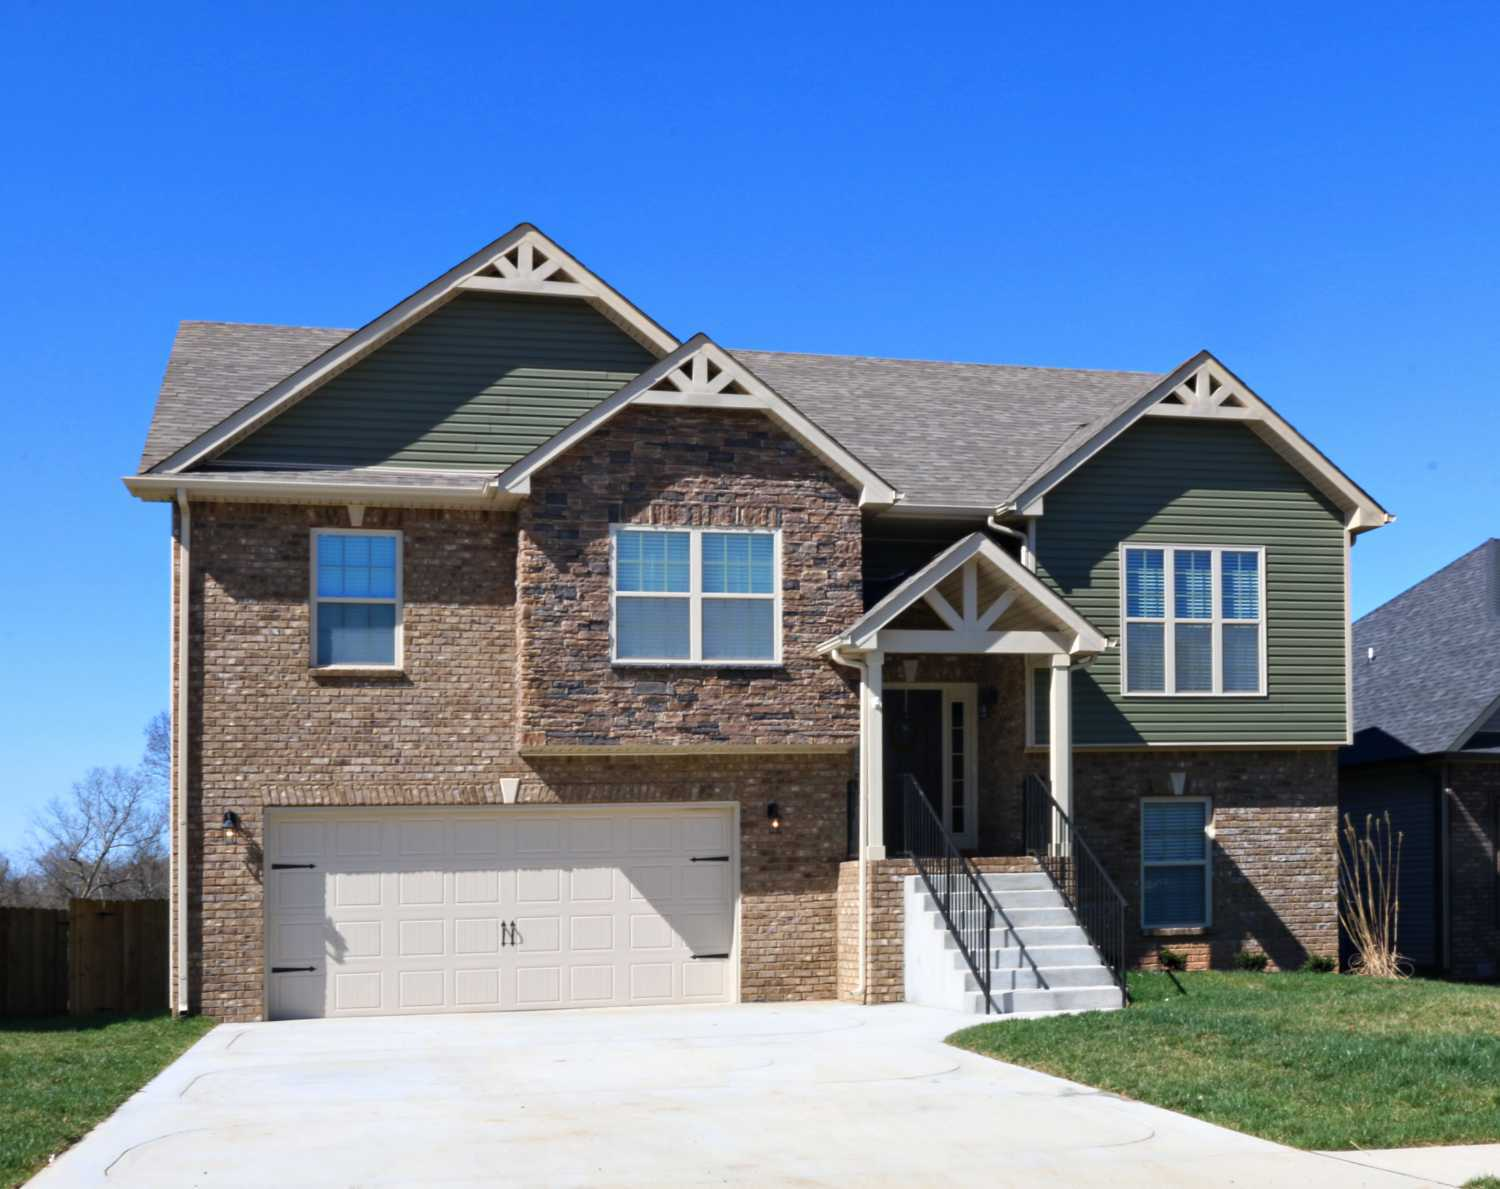 New home neighborhoods in rossview elementary clarksvil for New construction homes in clarksville tn